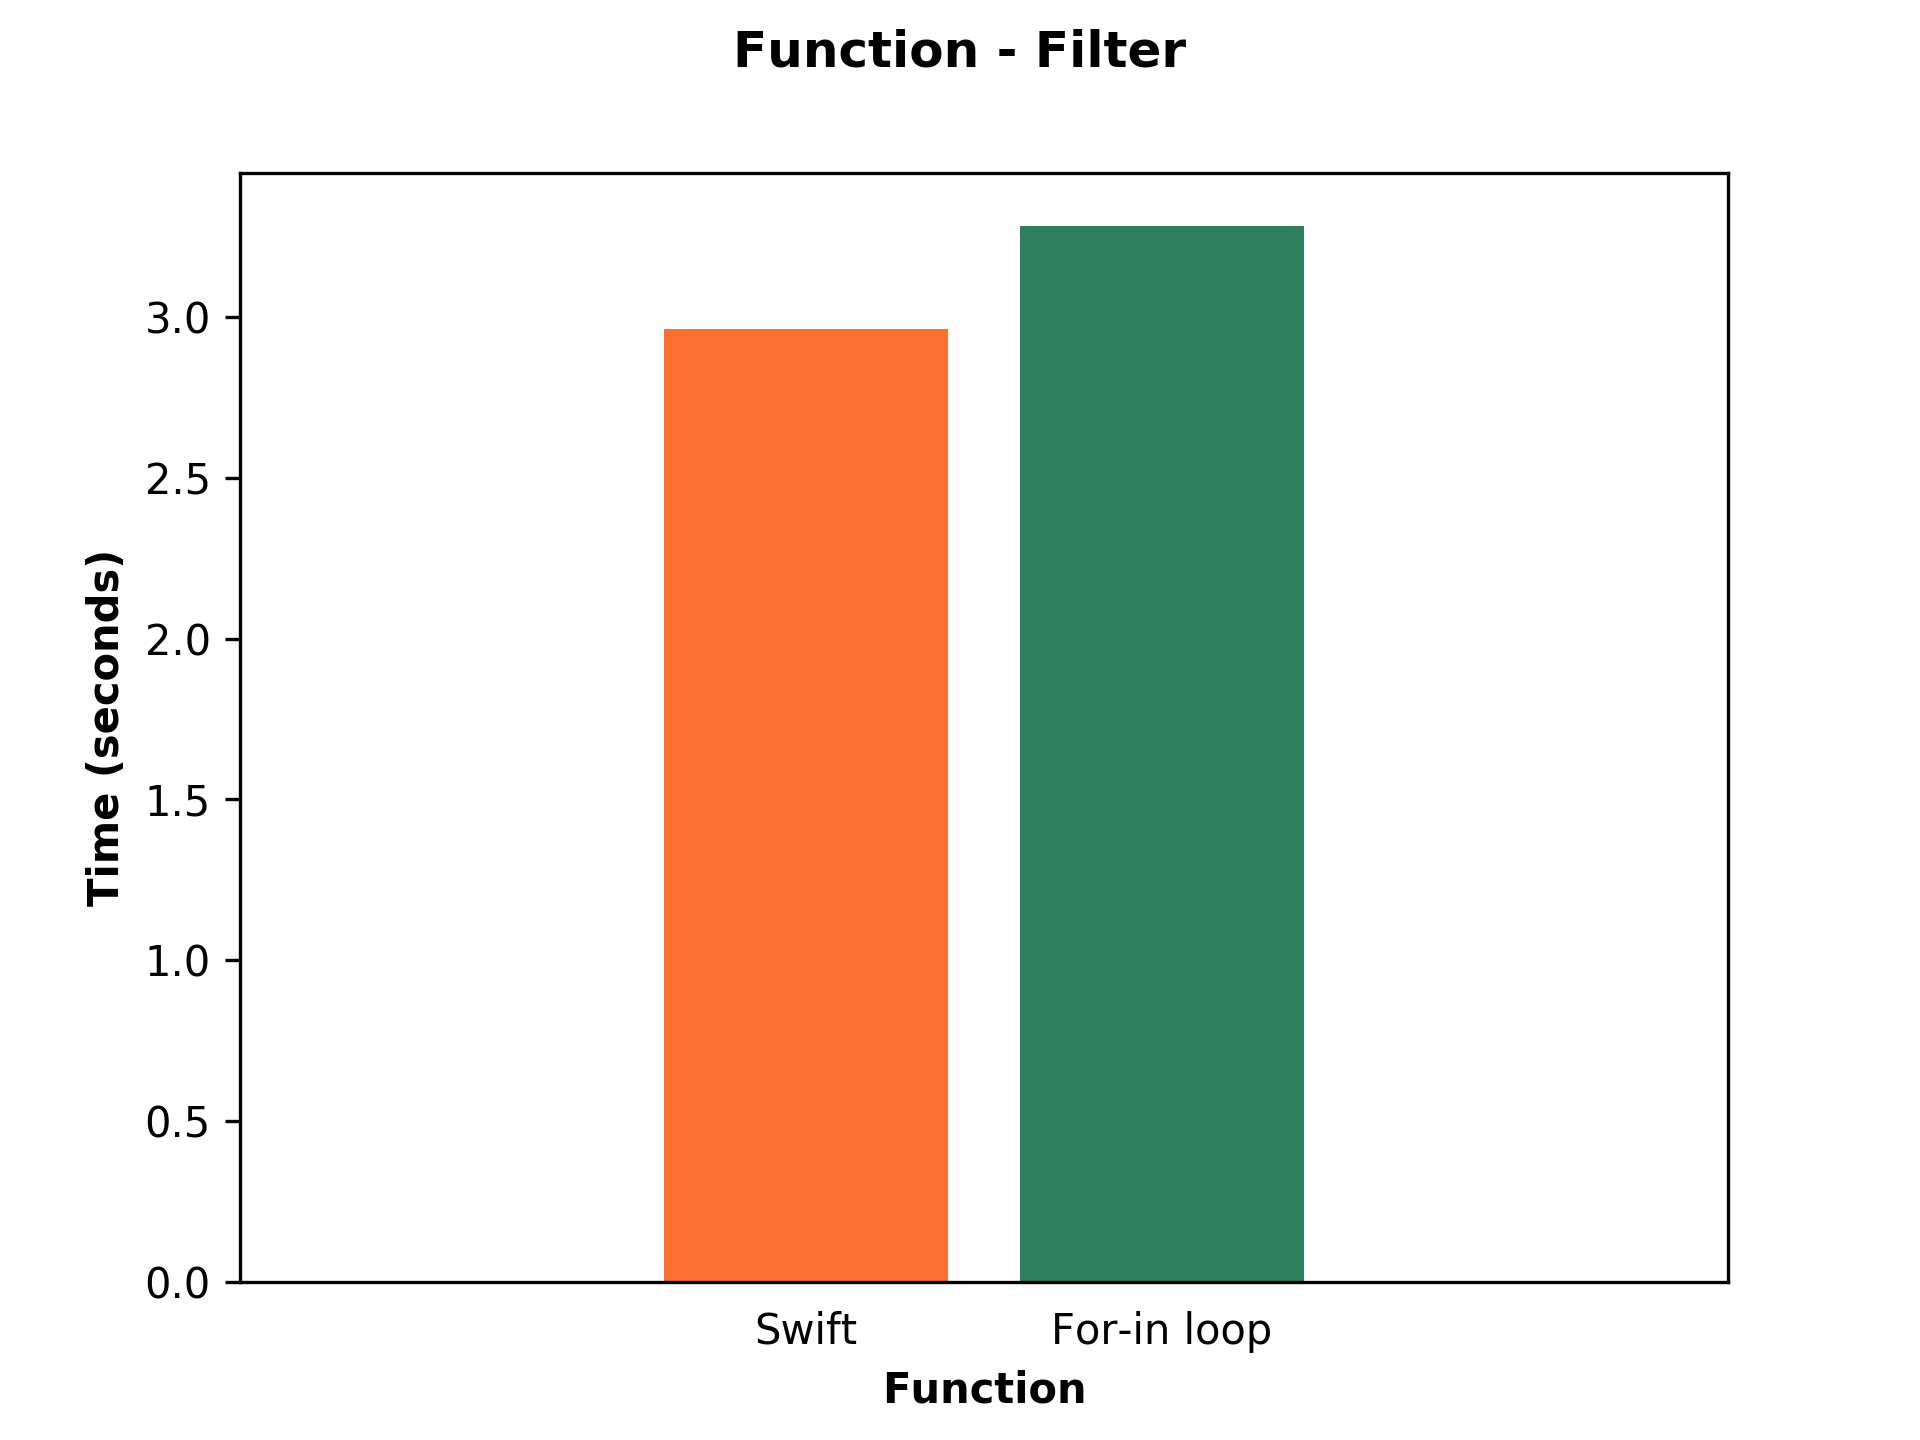 Bar chart shows performance of Swift and For-in loop of filter function